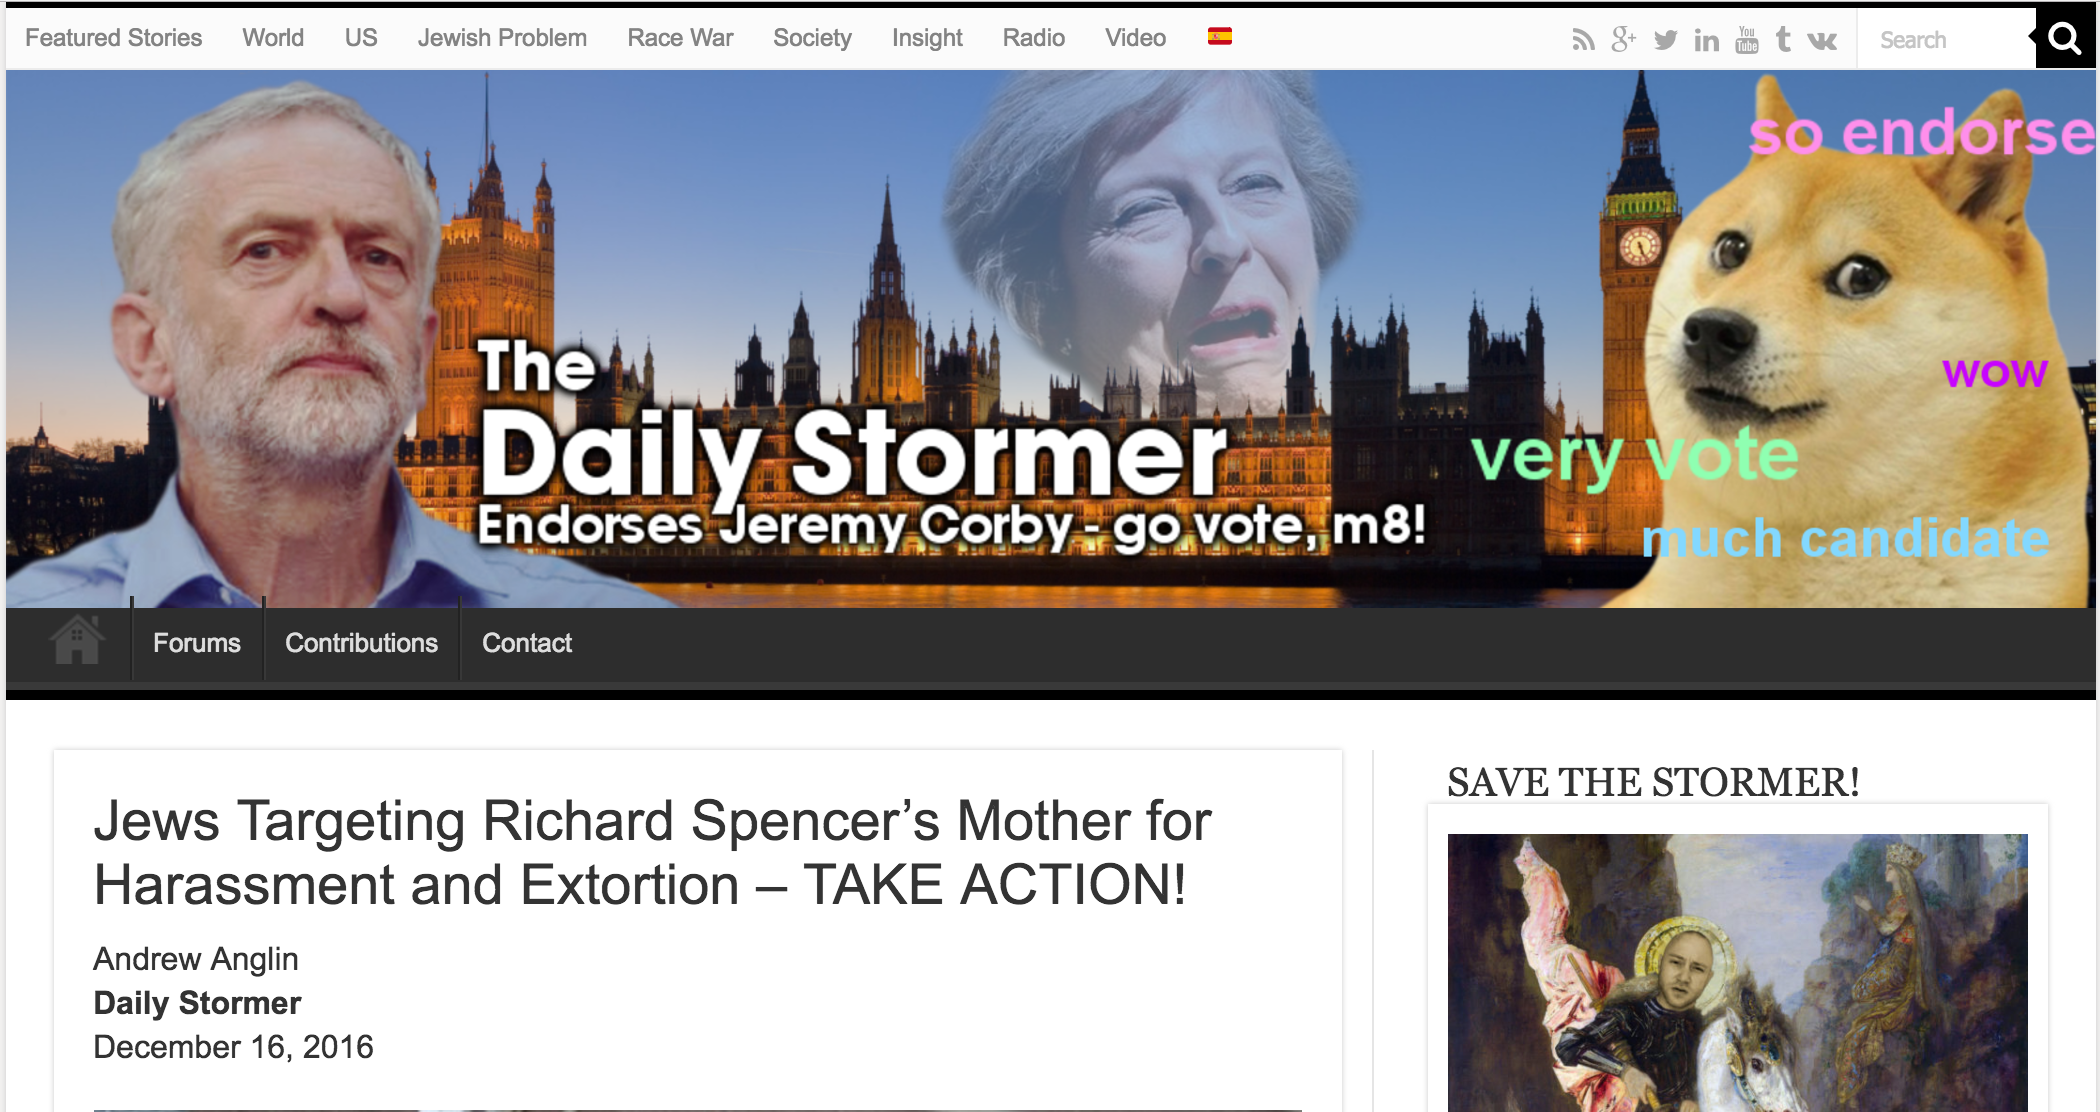 6-8-17 The Daily Stormer